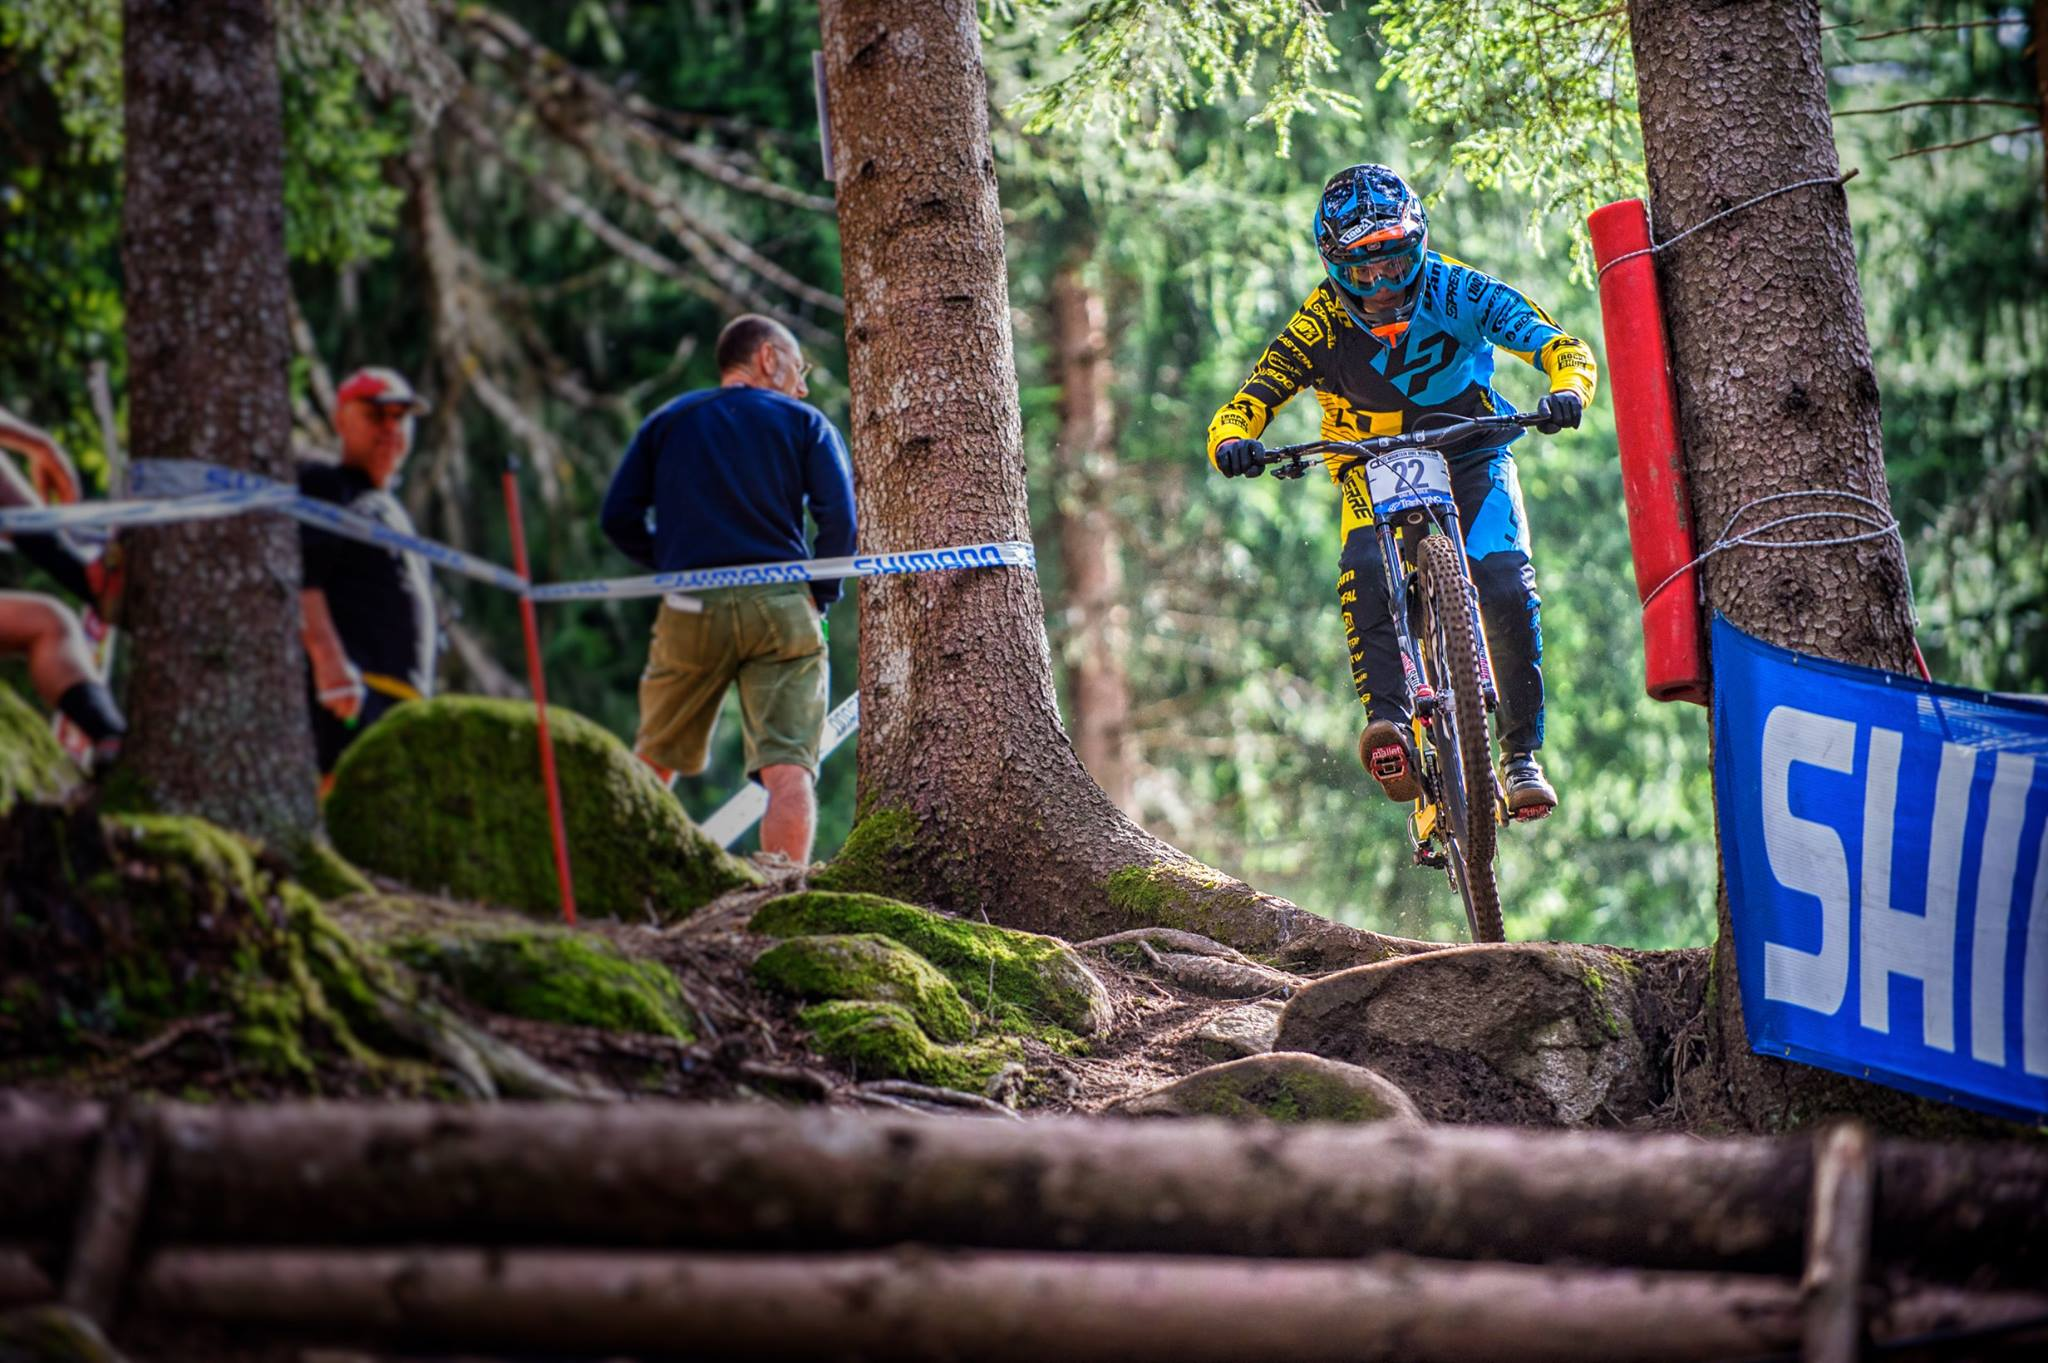 World Cup DH Val di Sole Vergier 2